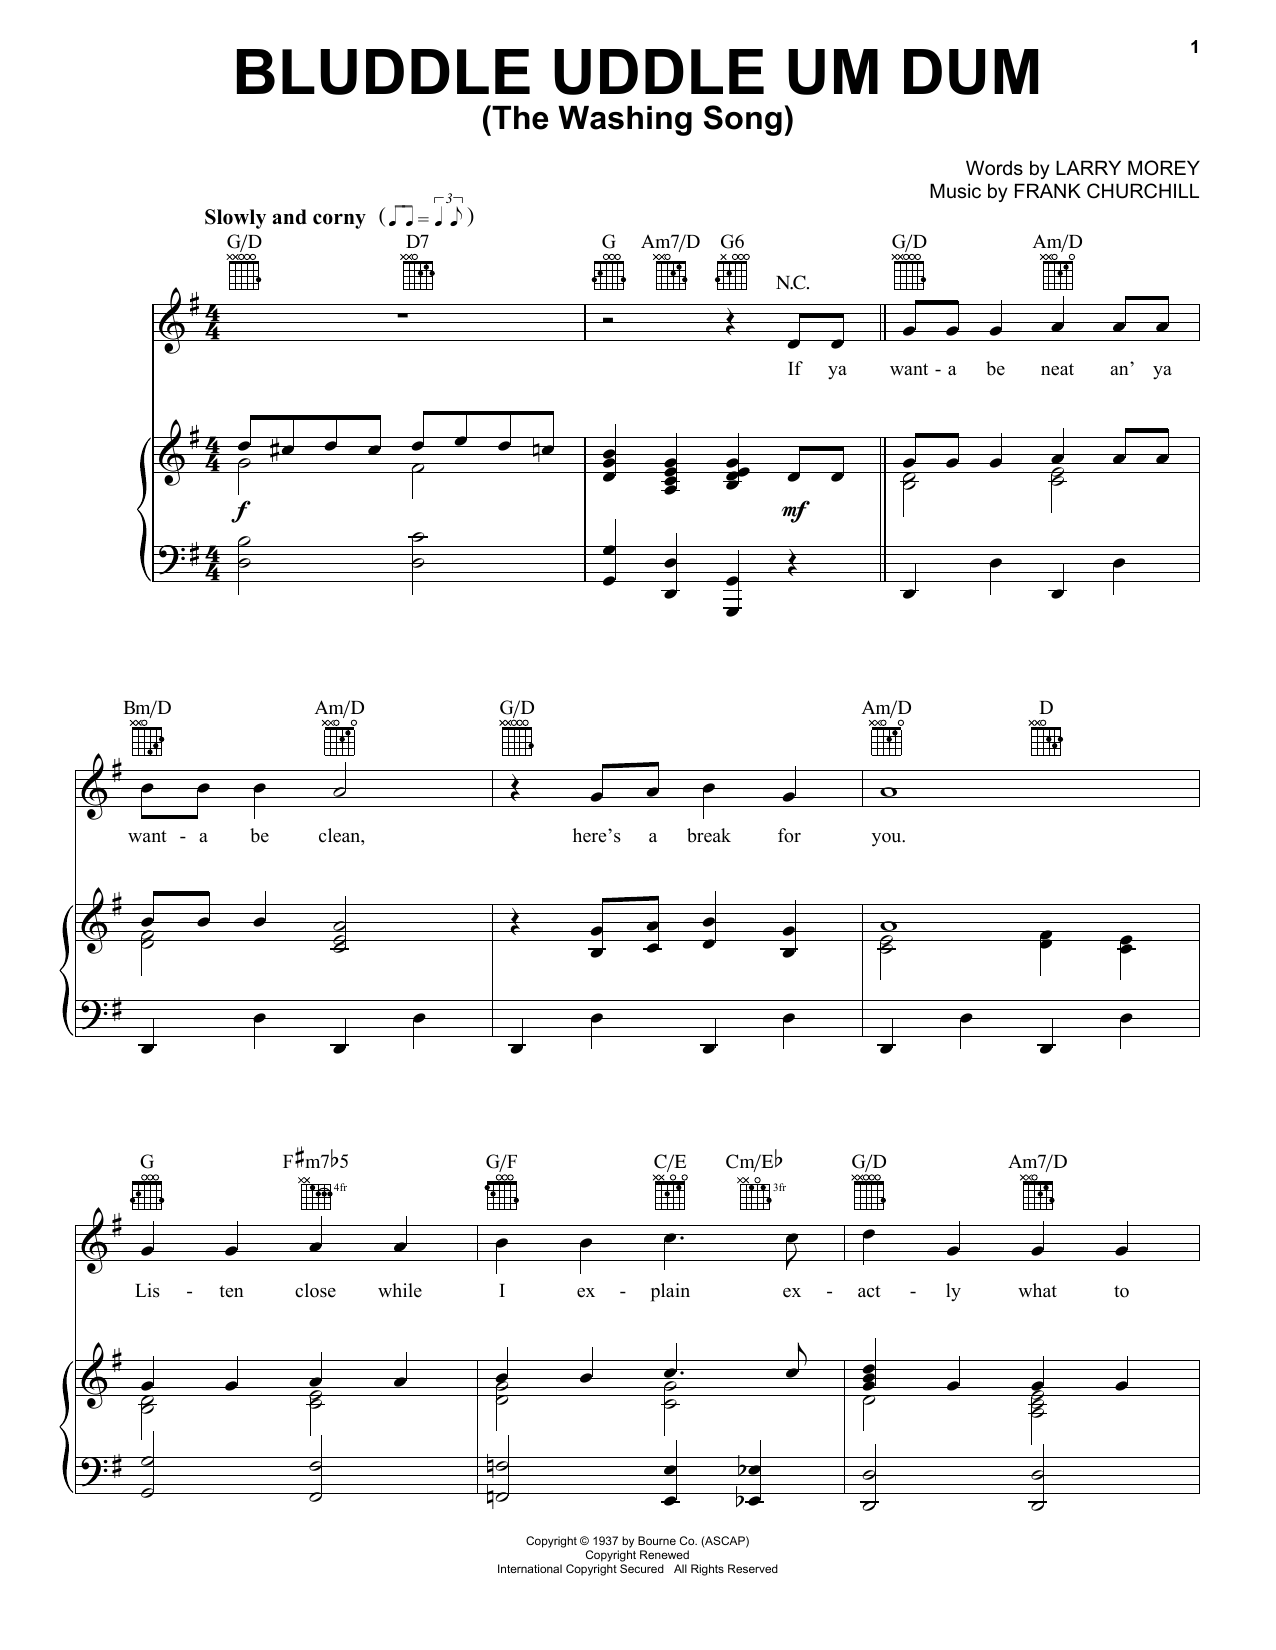 Bluddle Uddle Um Dum (The Washing Song) (from Walt Disney's Snow White and the Seven Dwarfs) (Piano, Vocal & Guitar (Right-Hand Melody))